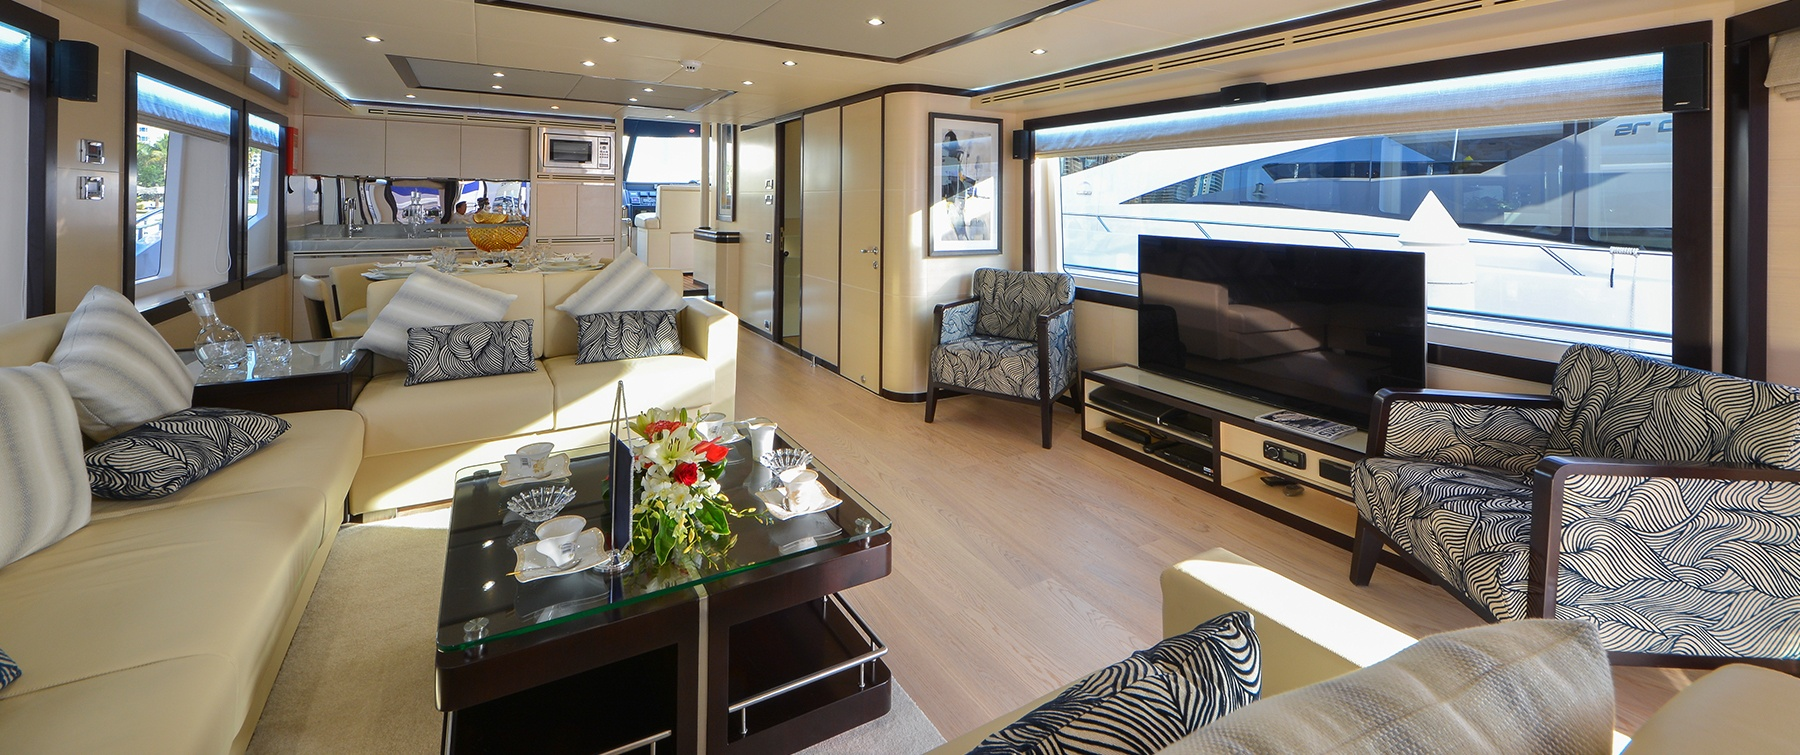 Luxurious Interior of Nomad 75